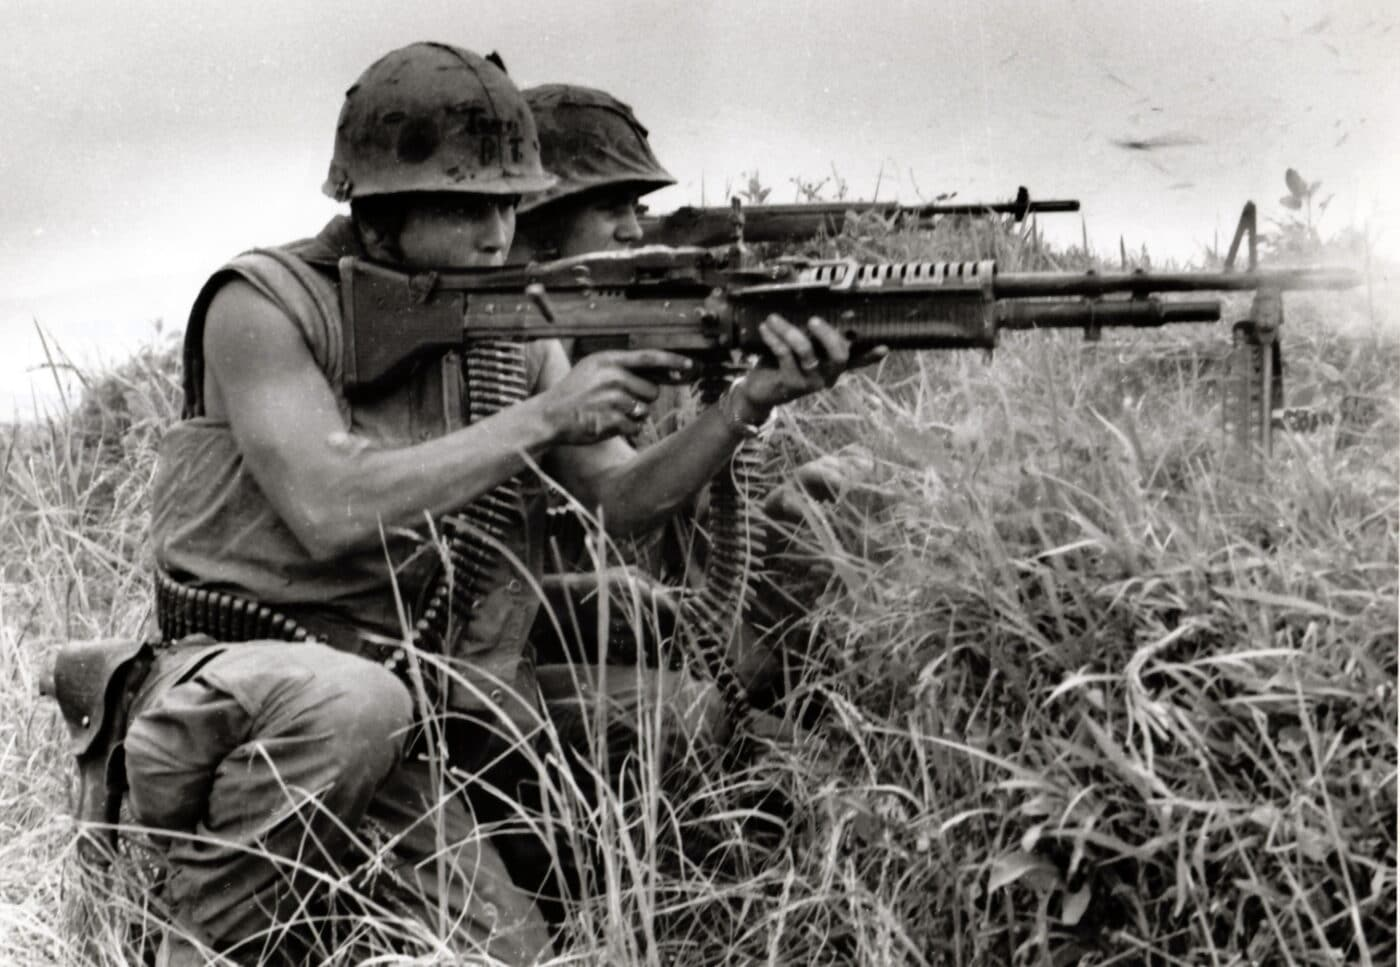 USMC M60 being used by solders in the DMZ between North and South Vietnam in May of 1967